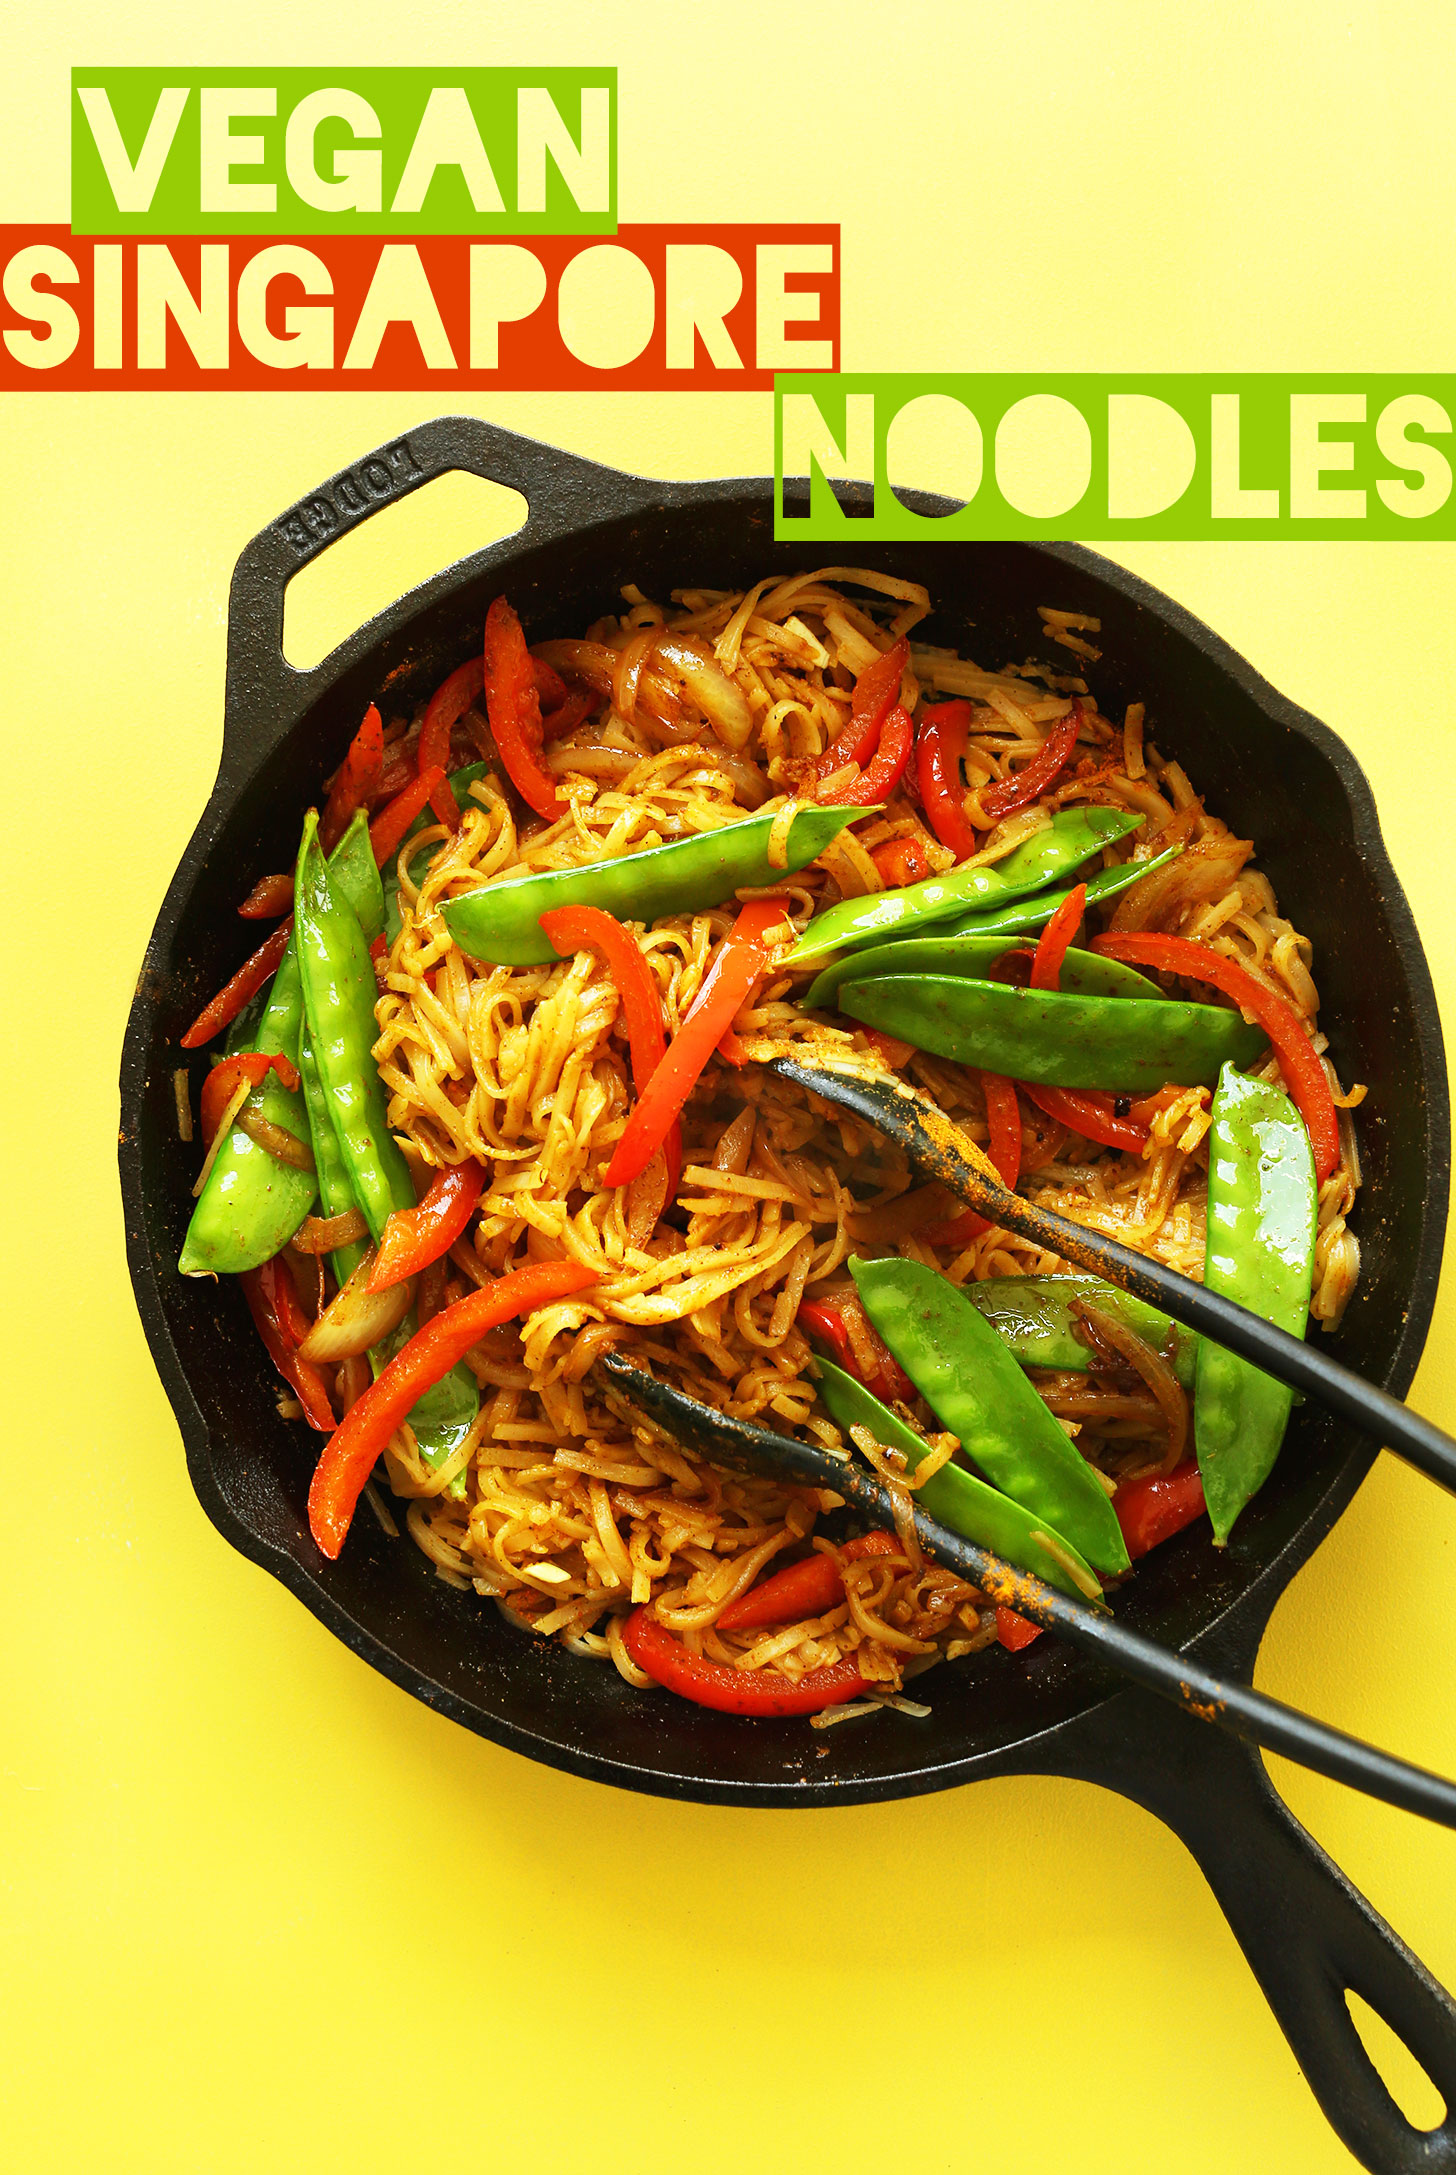 Cast-iron skillet filled with our healthy gluten-free vegan Singapore Noodles for dinner